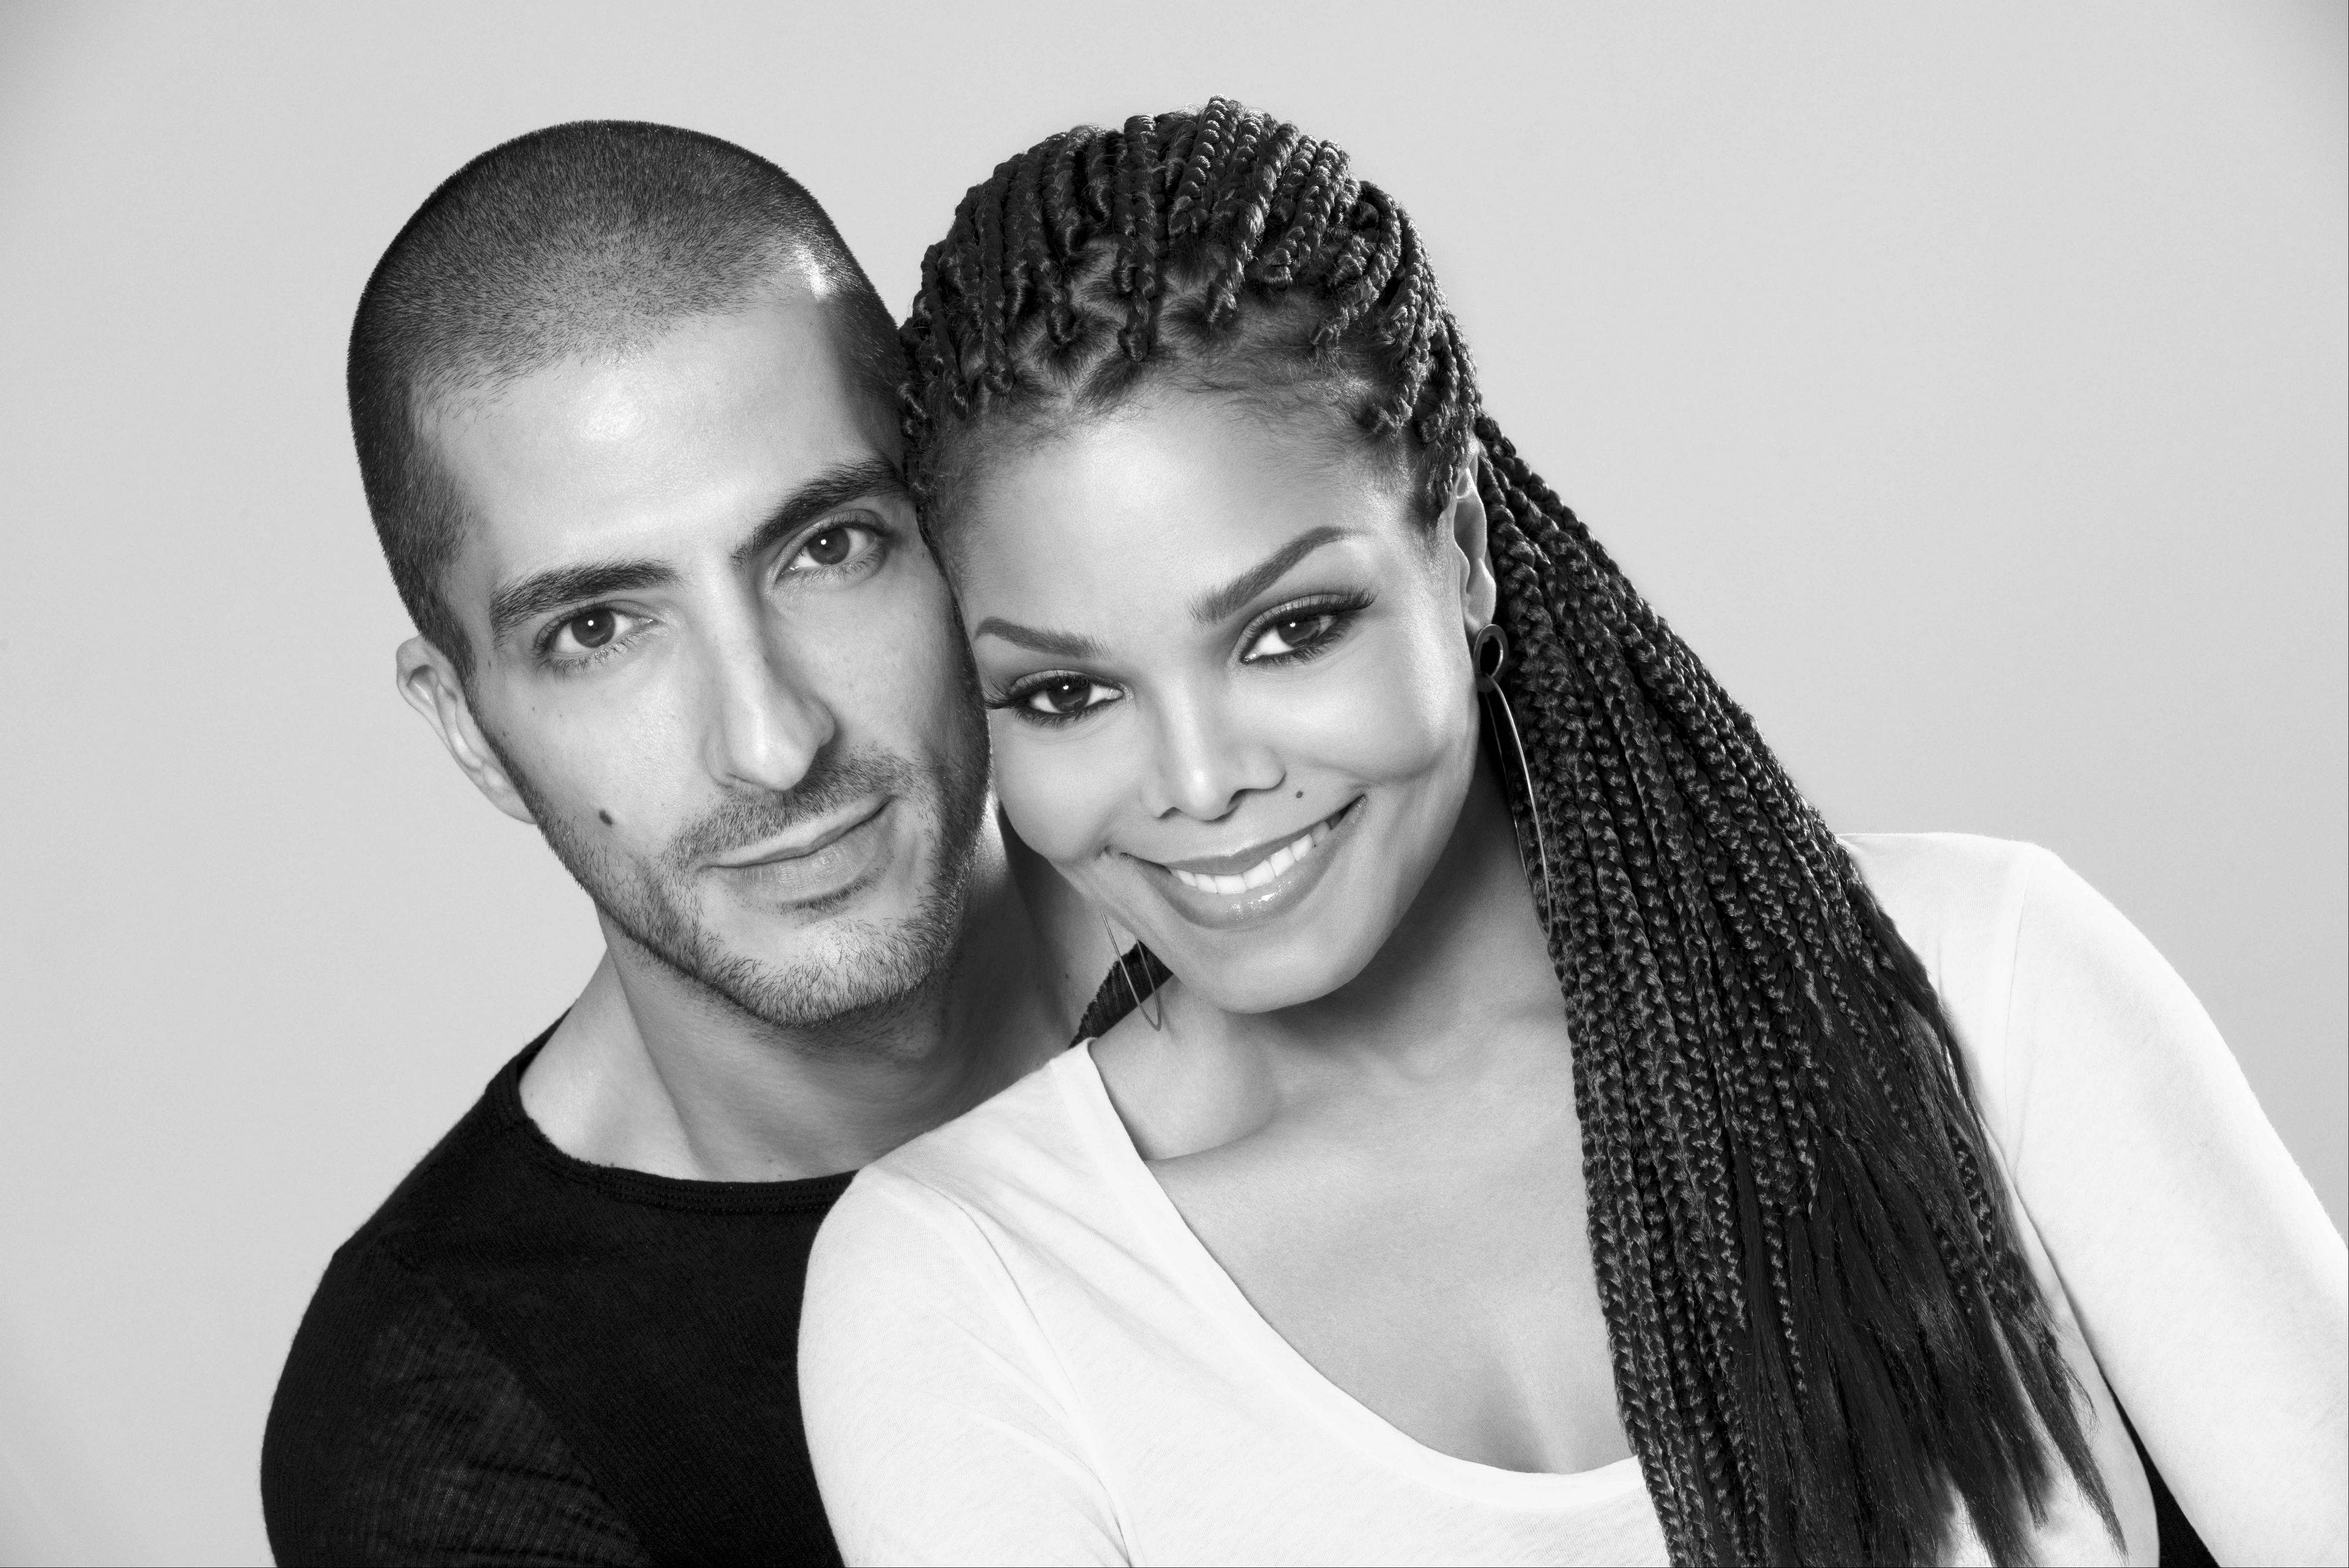 This 2012 publicity photo provided by Guttman Associates shows Janet Jackson with Wissam Al Mana, in a portrait taken by photographer, Marco Glaviano. A representative for Jackson confirmed Monday that the musician and Wissam Al Mana wed last year.